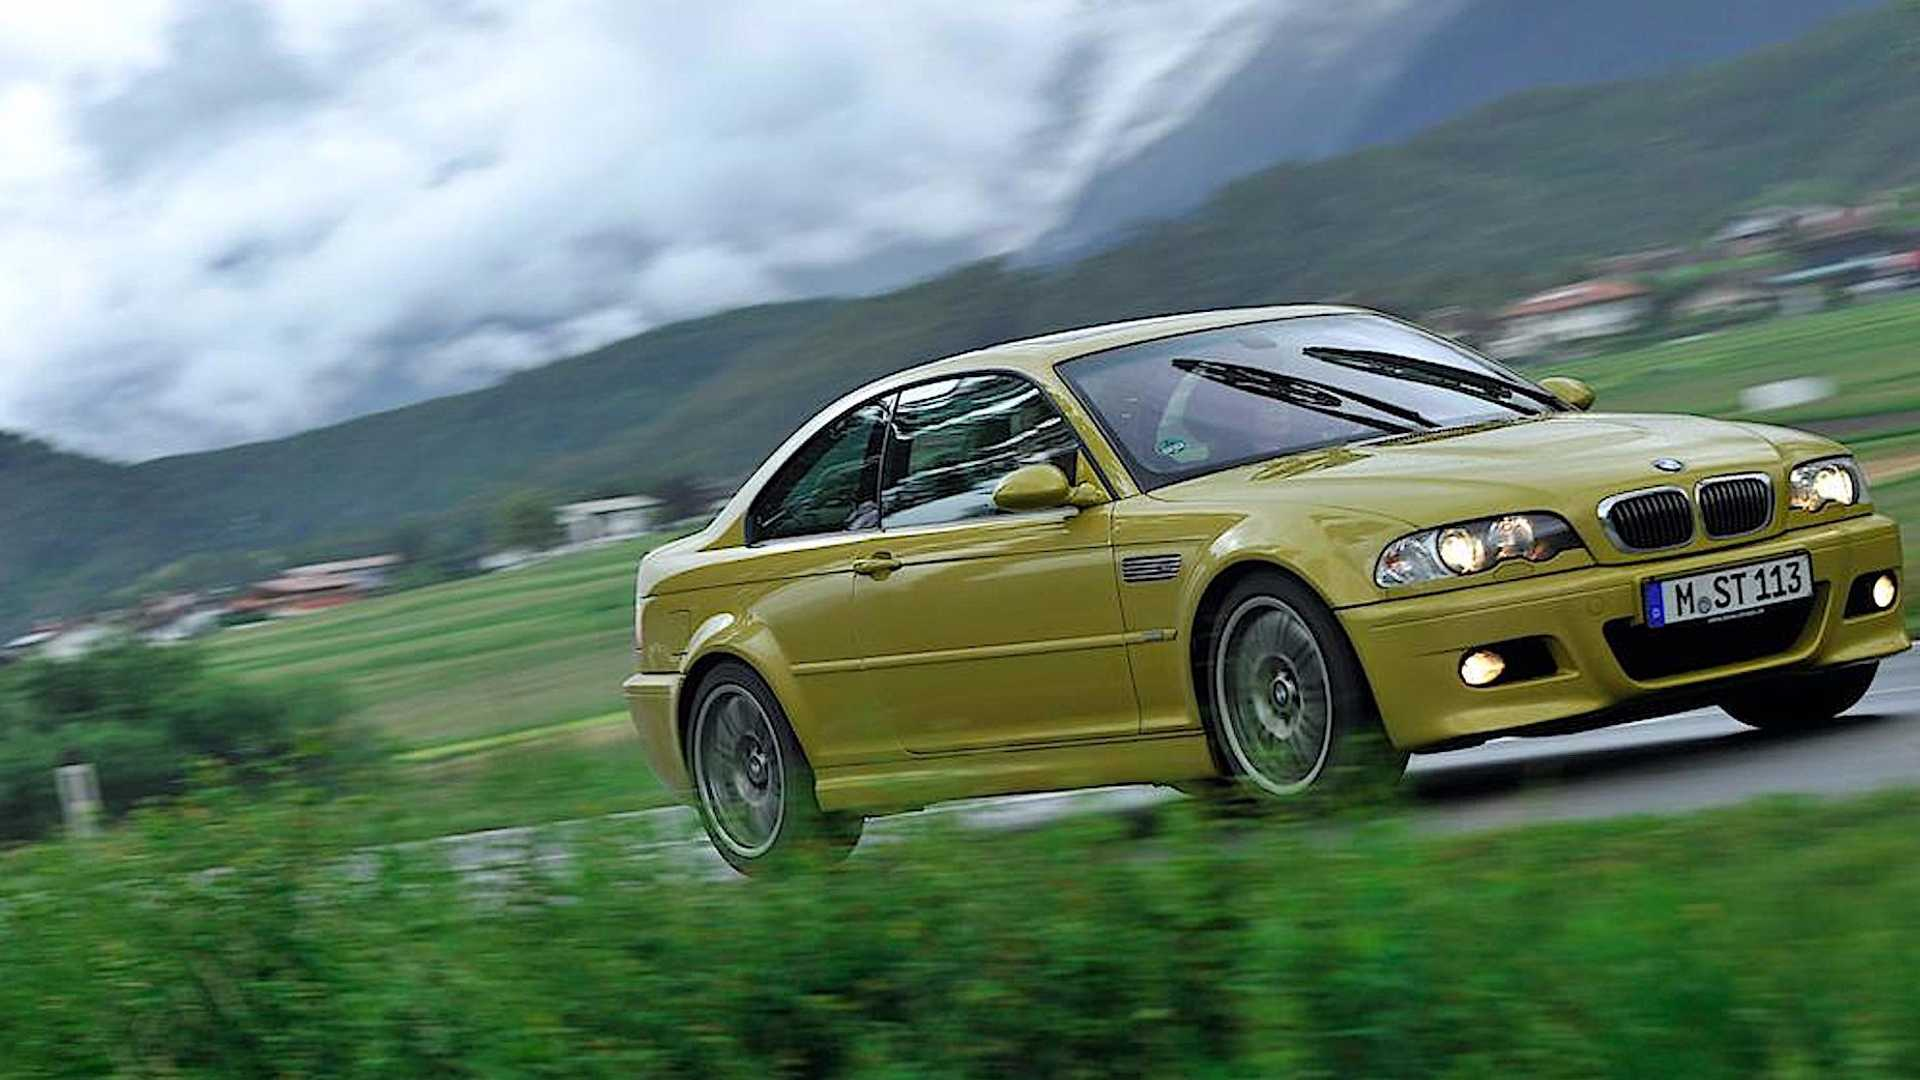 2002 2007 Bmw M3 E46 Buying Guide Motorious